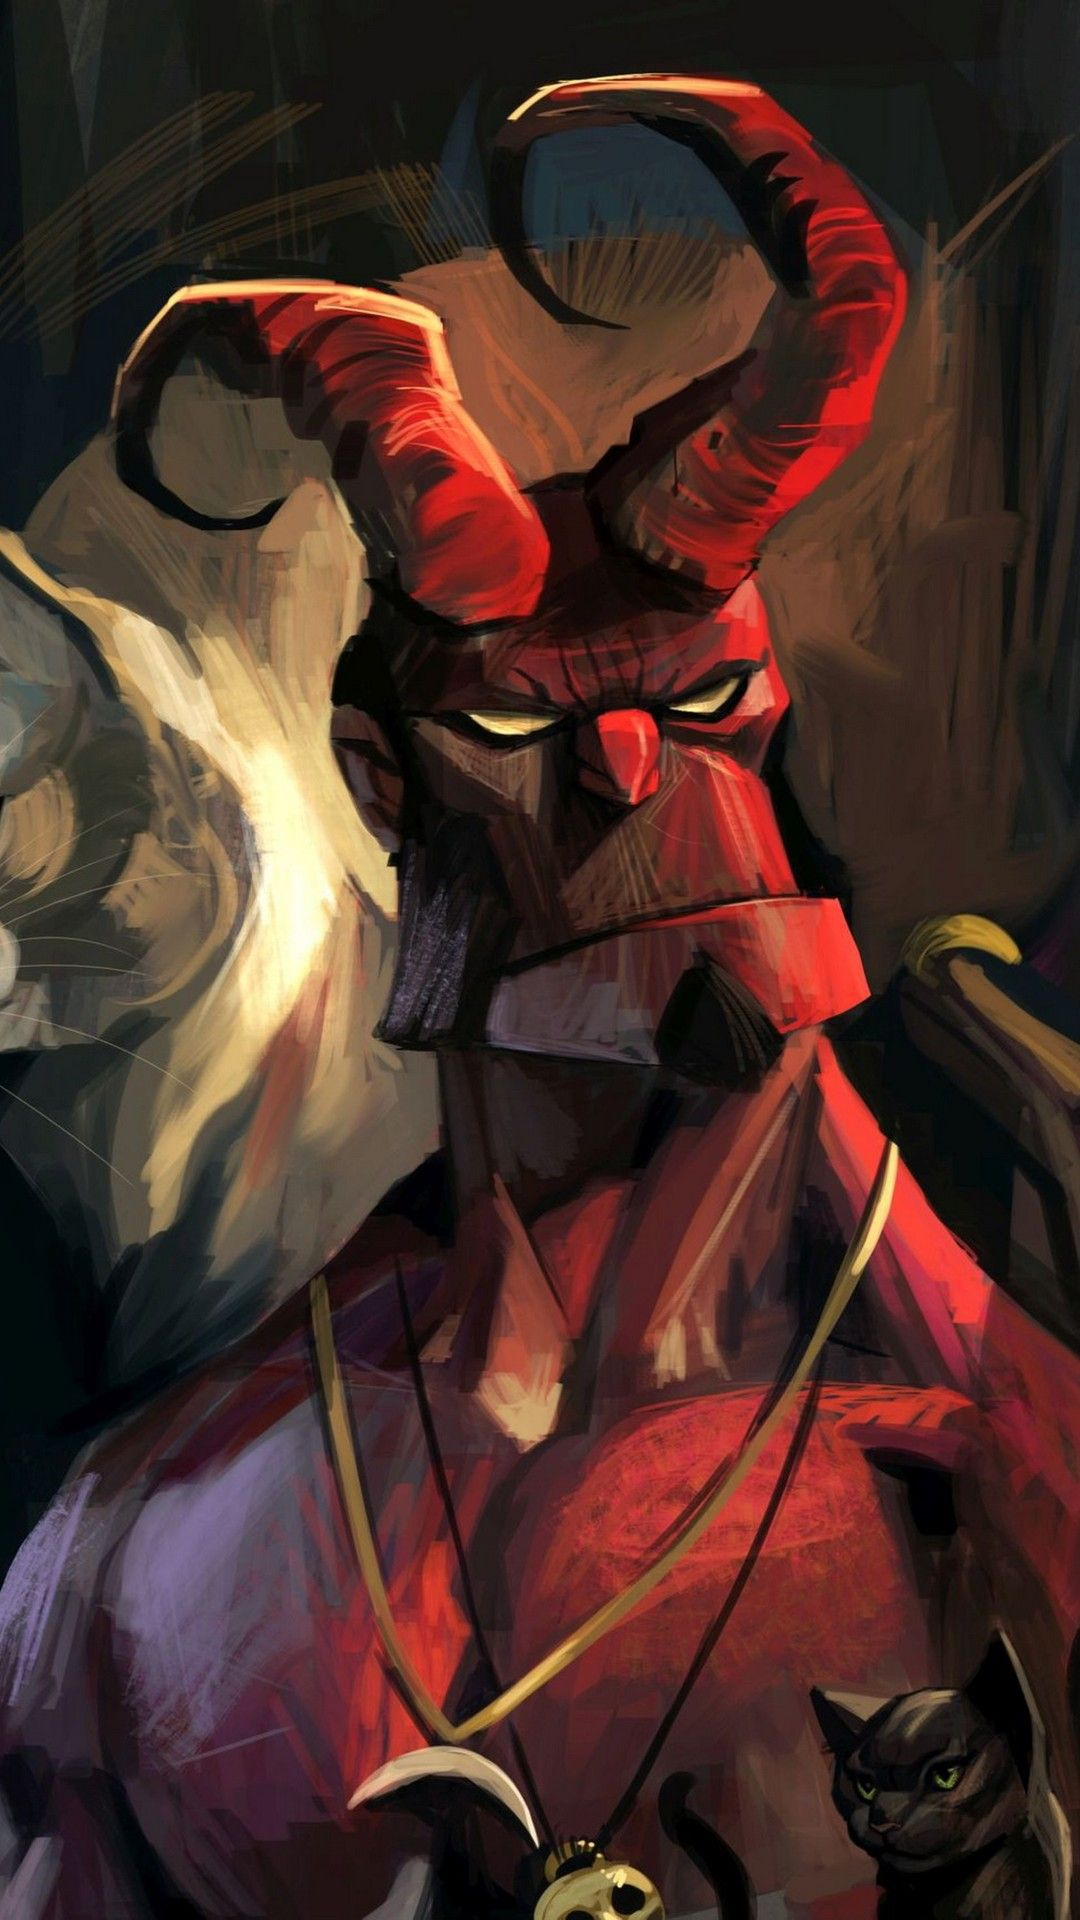 Hellboy Wallpaper For Iphone 2021 Live Wallpaper Hd Hellboy Wallpaper Iphone Wallpaper Phone Wallpaper